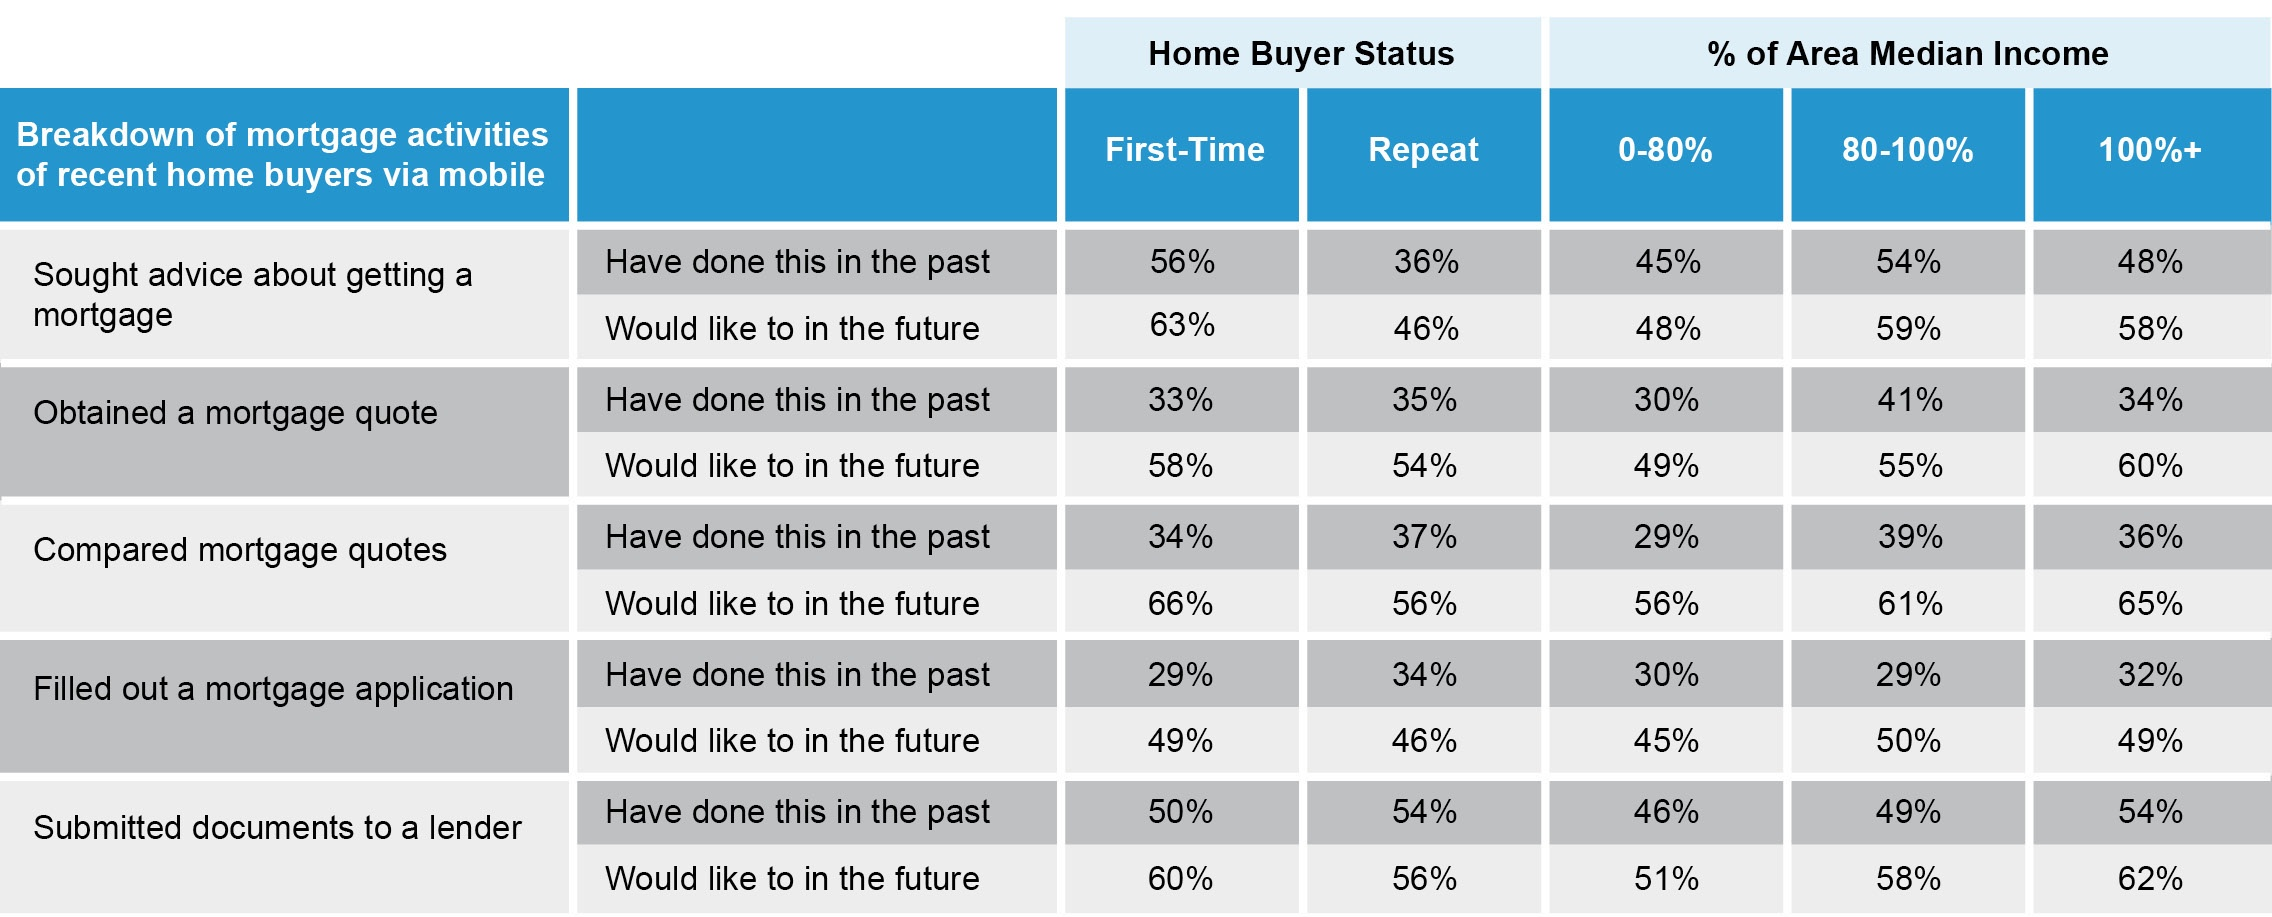 Mobile Usage for Mortgage Activities copy.jpg